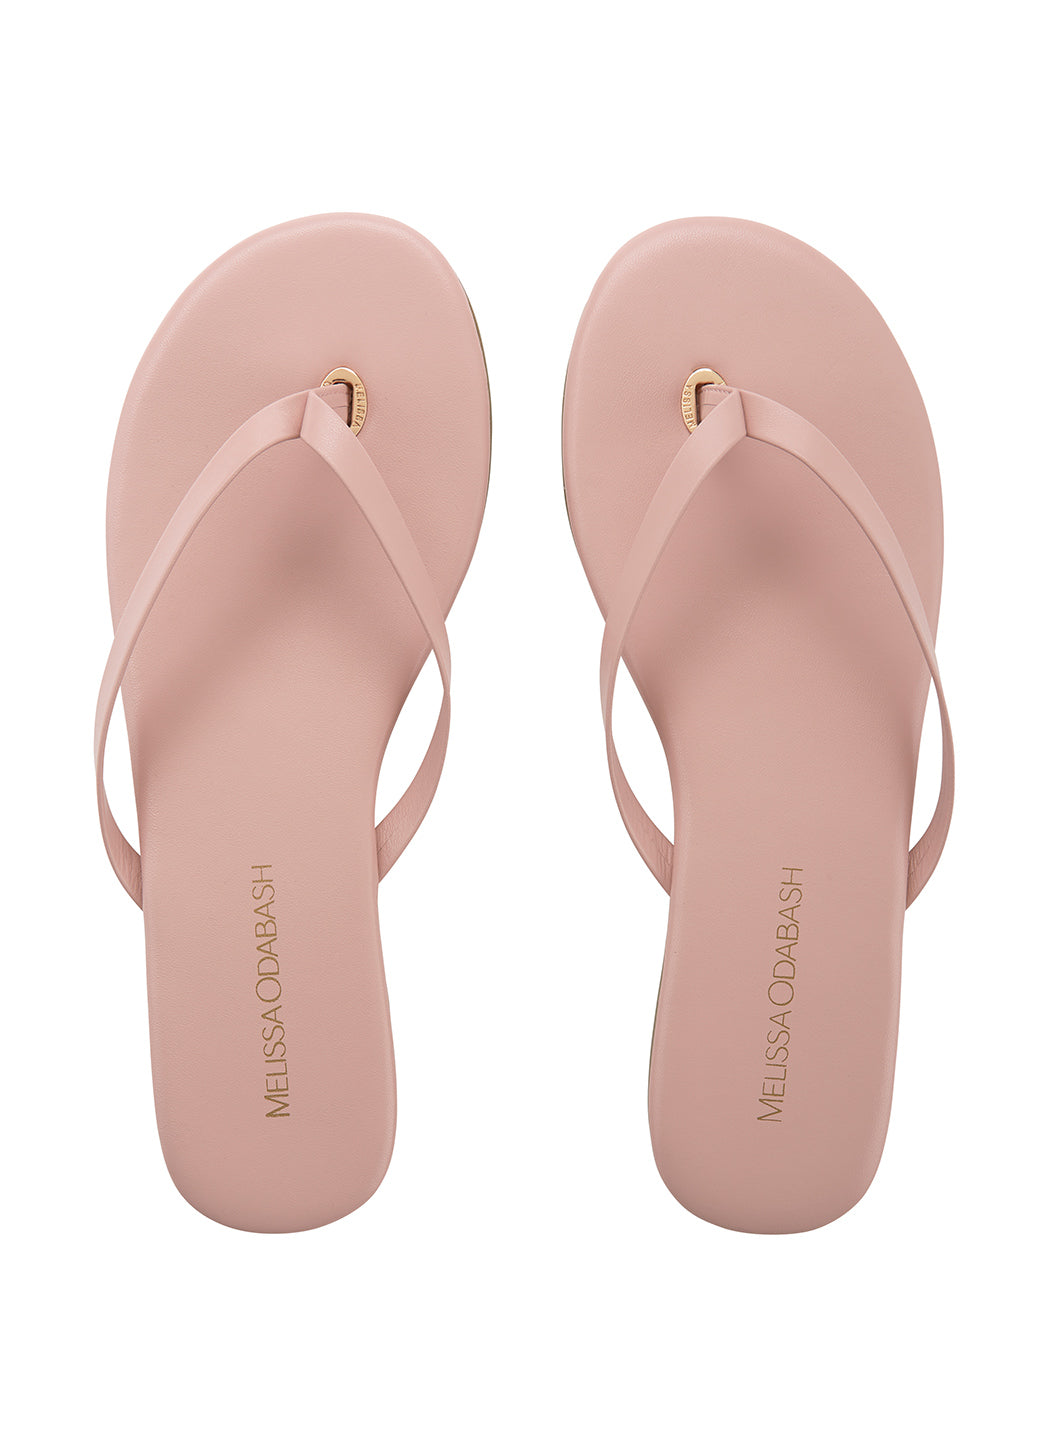 Leather Flip Flops Pink  - Melissa Odabash Leather Flip Flops